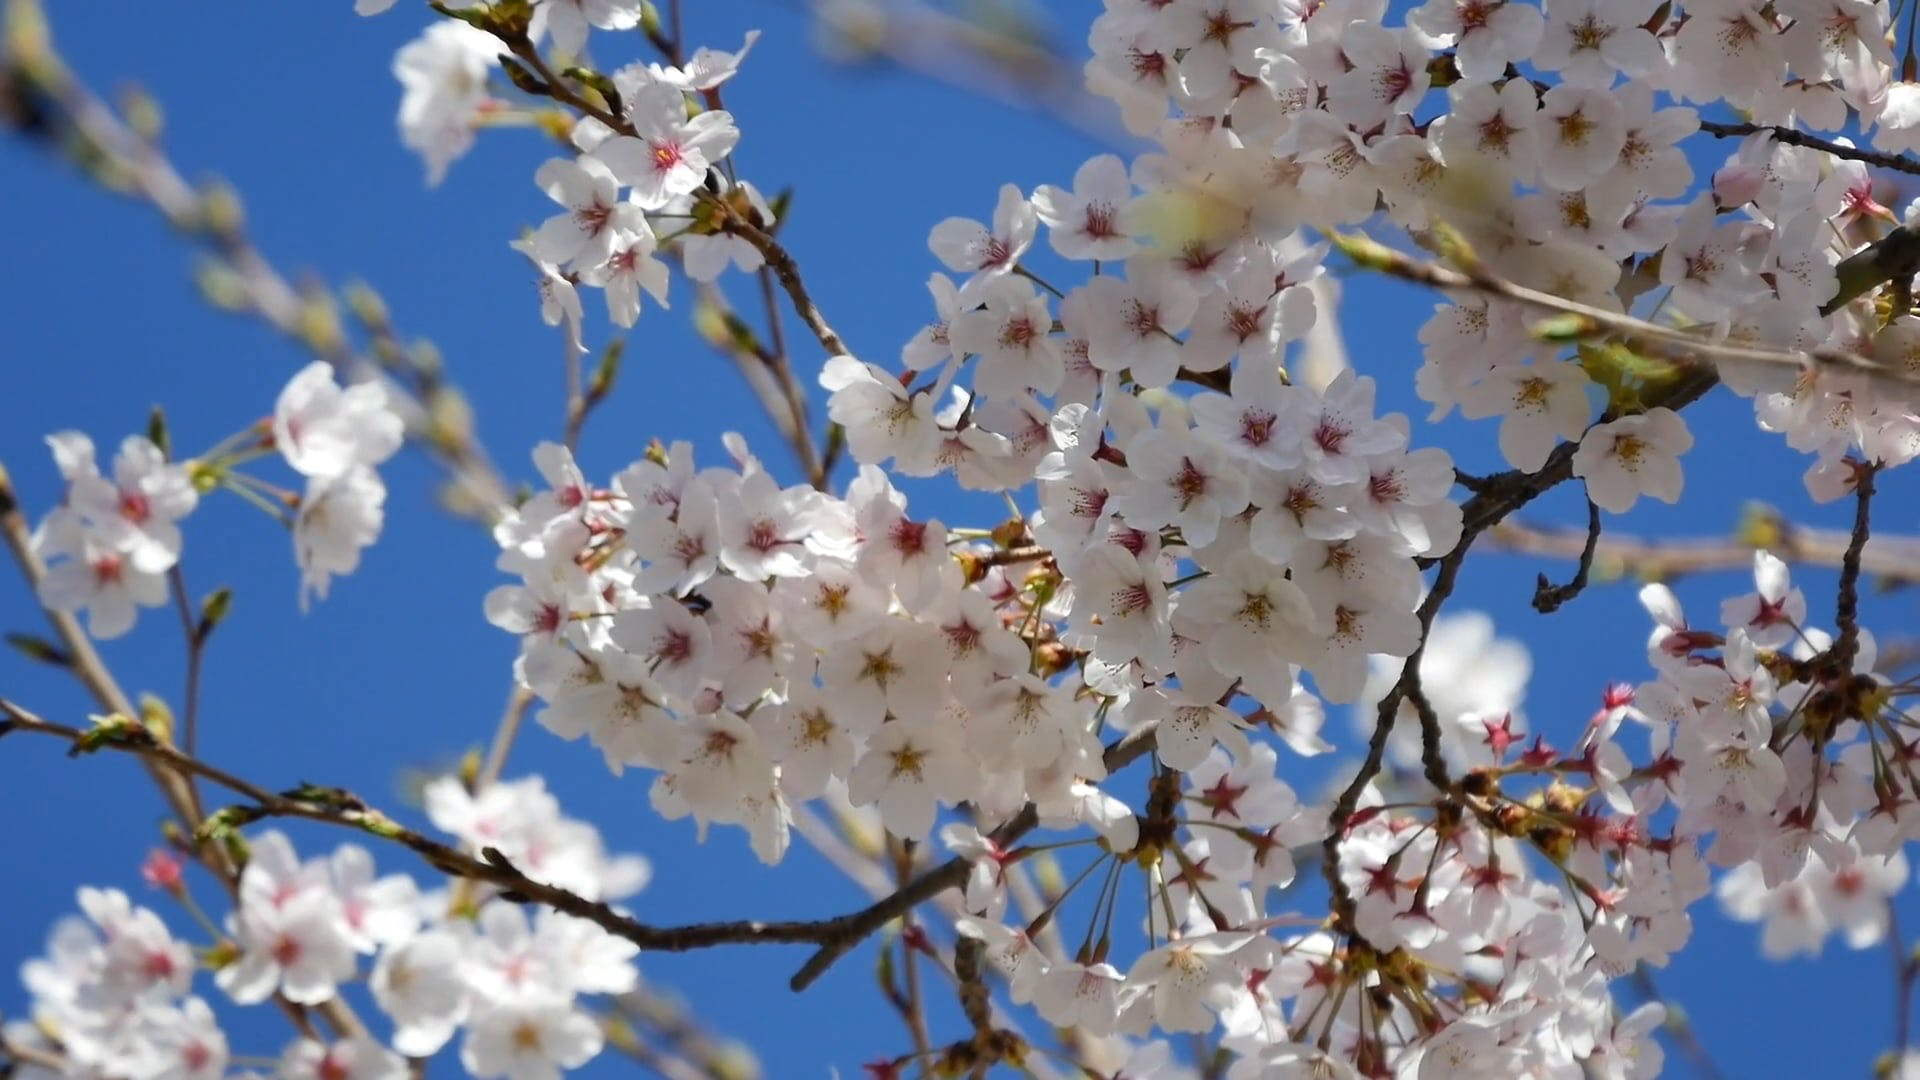 Close Up Video Of Cherry Blossoms